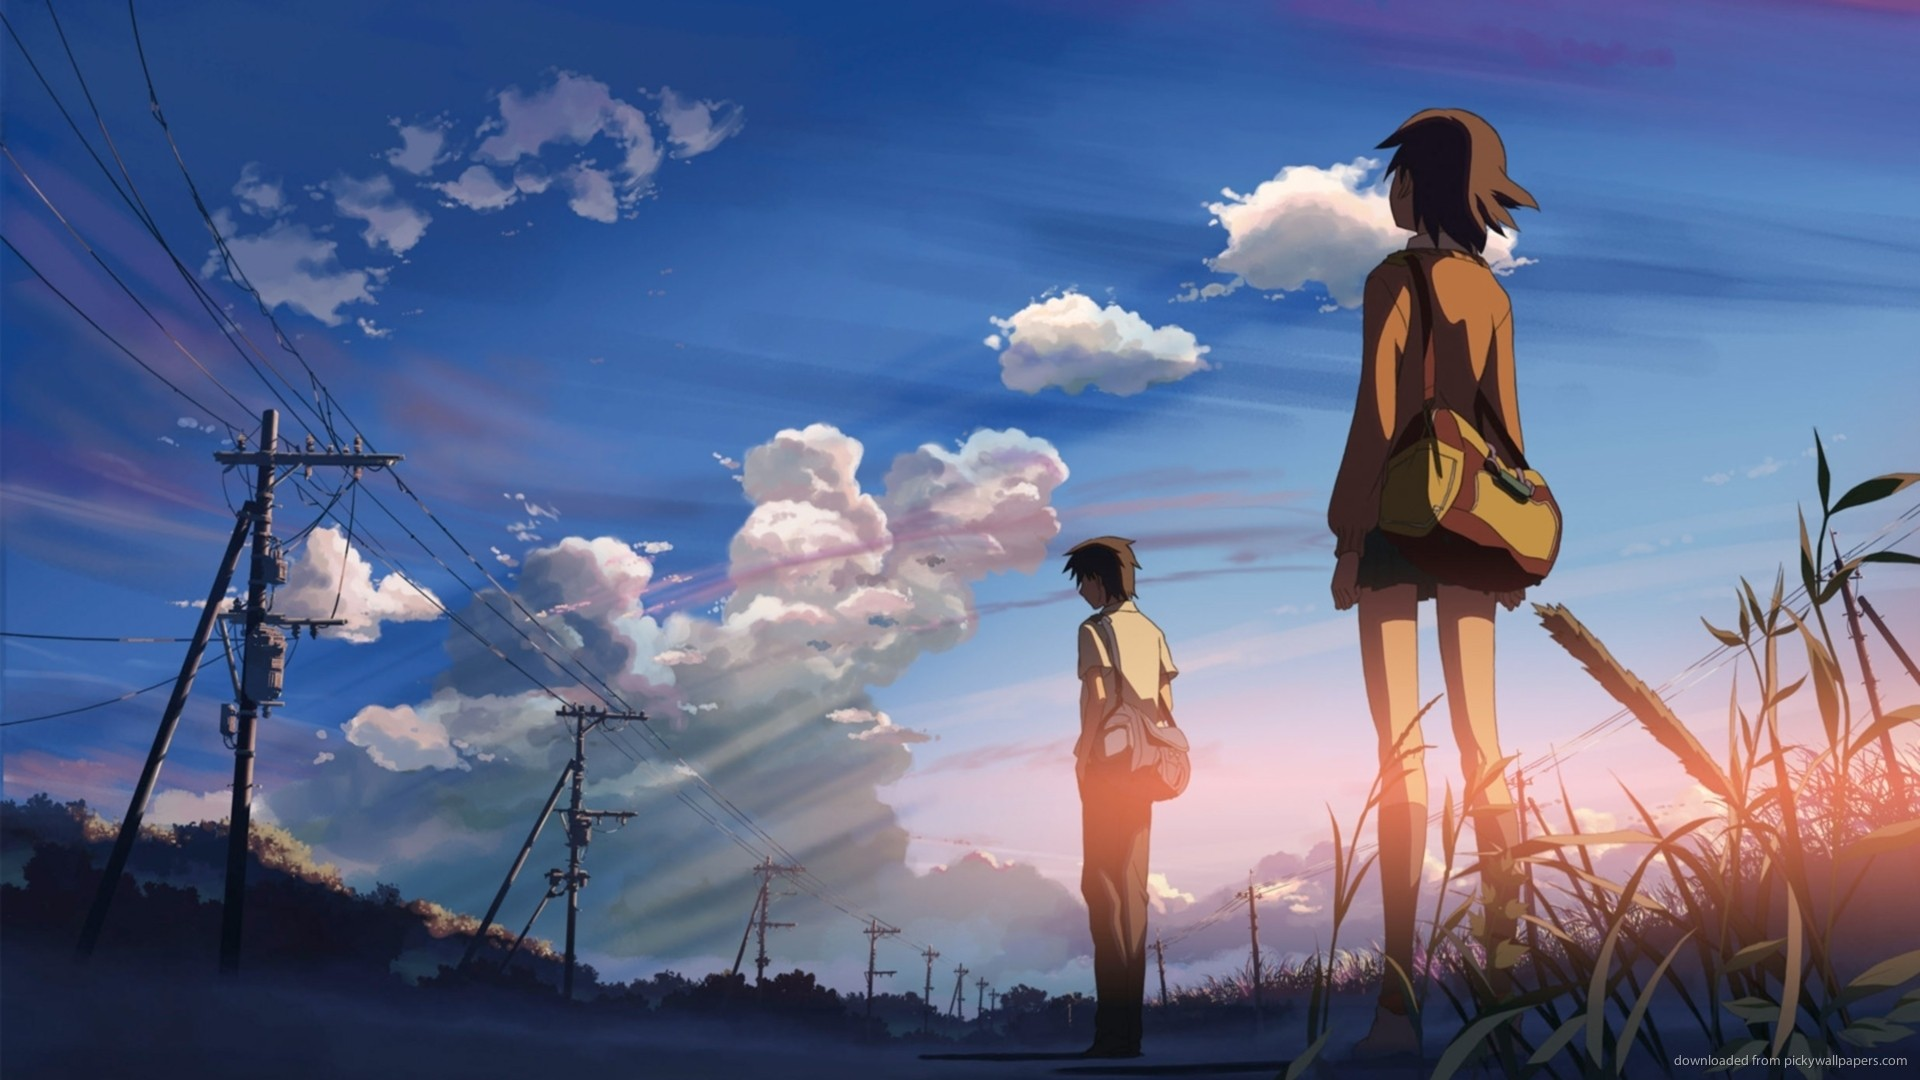 Sky 5 Centimeters Per Second Makoto Shinkai Download Wallpaper